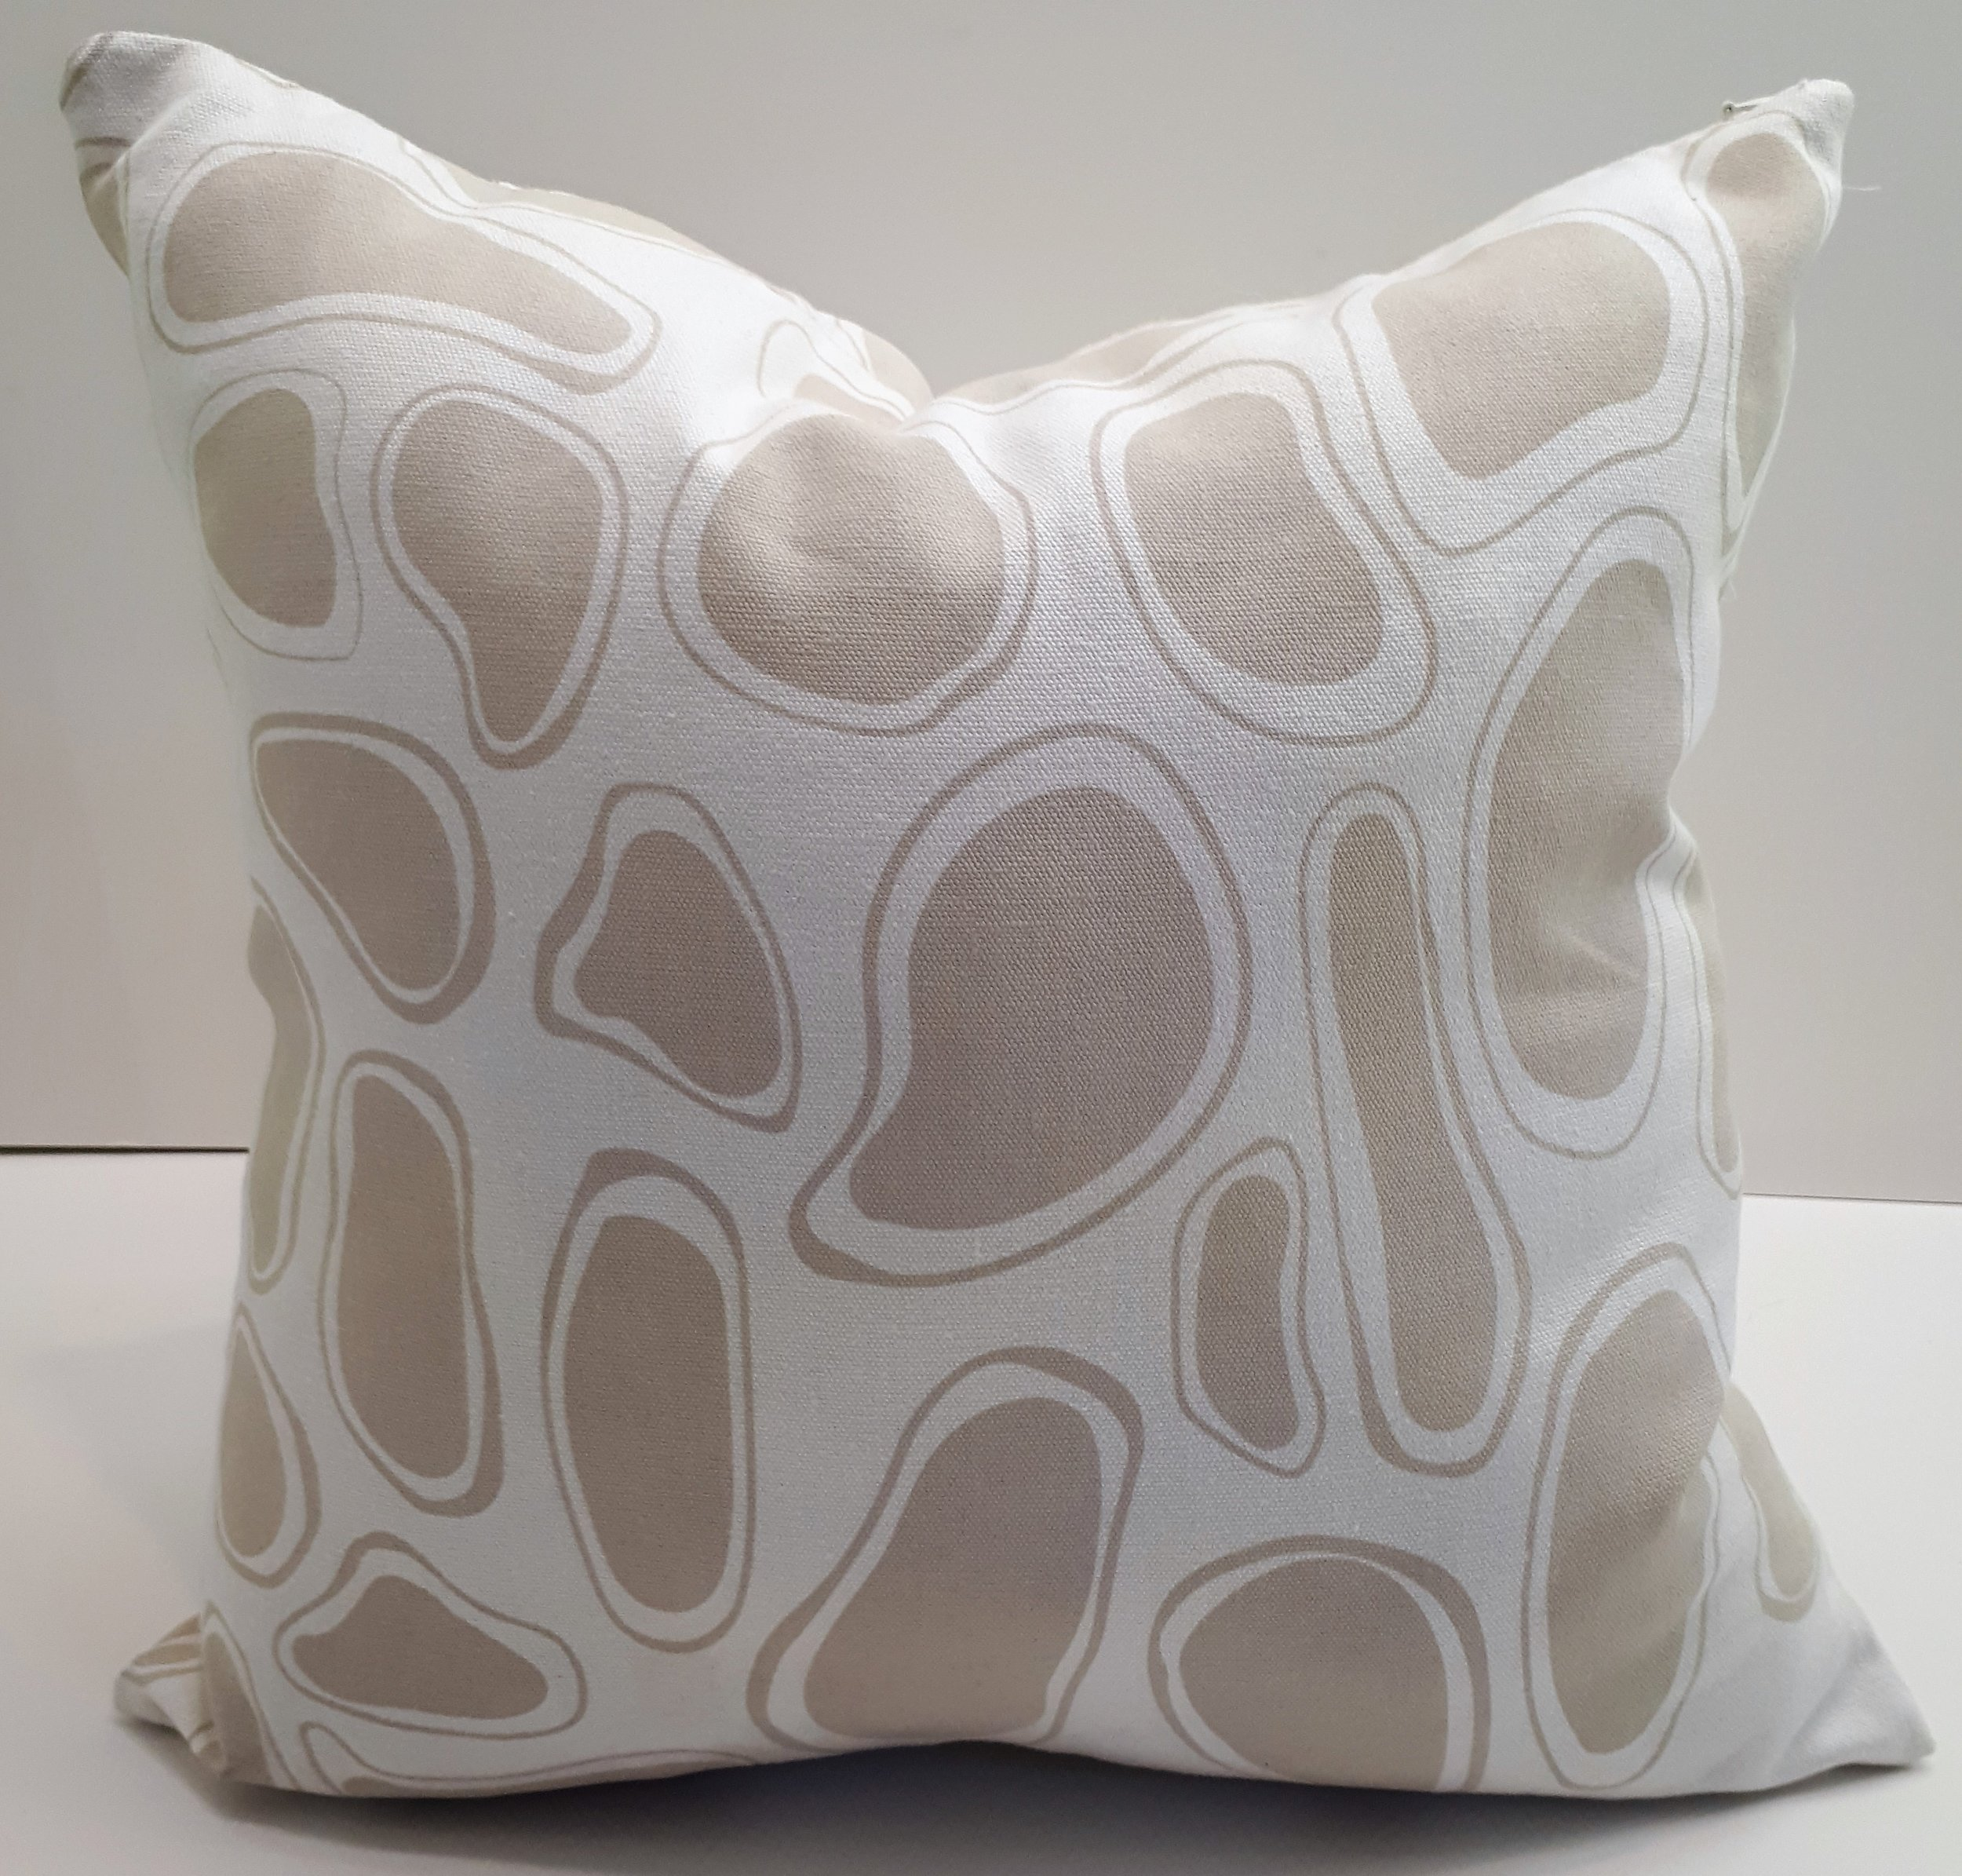 Stones Designed Art Cushion by St James Whitting For Hemp Gallery Australia